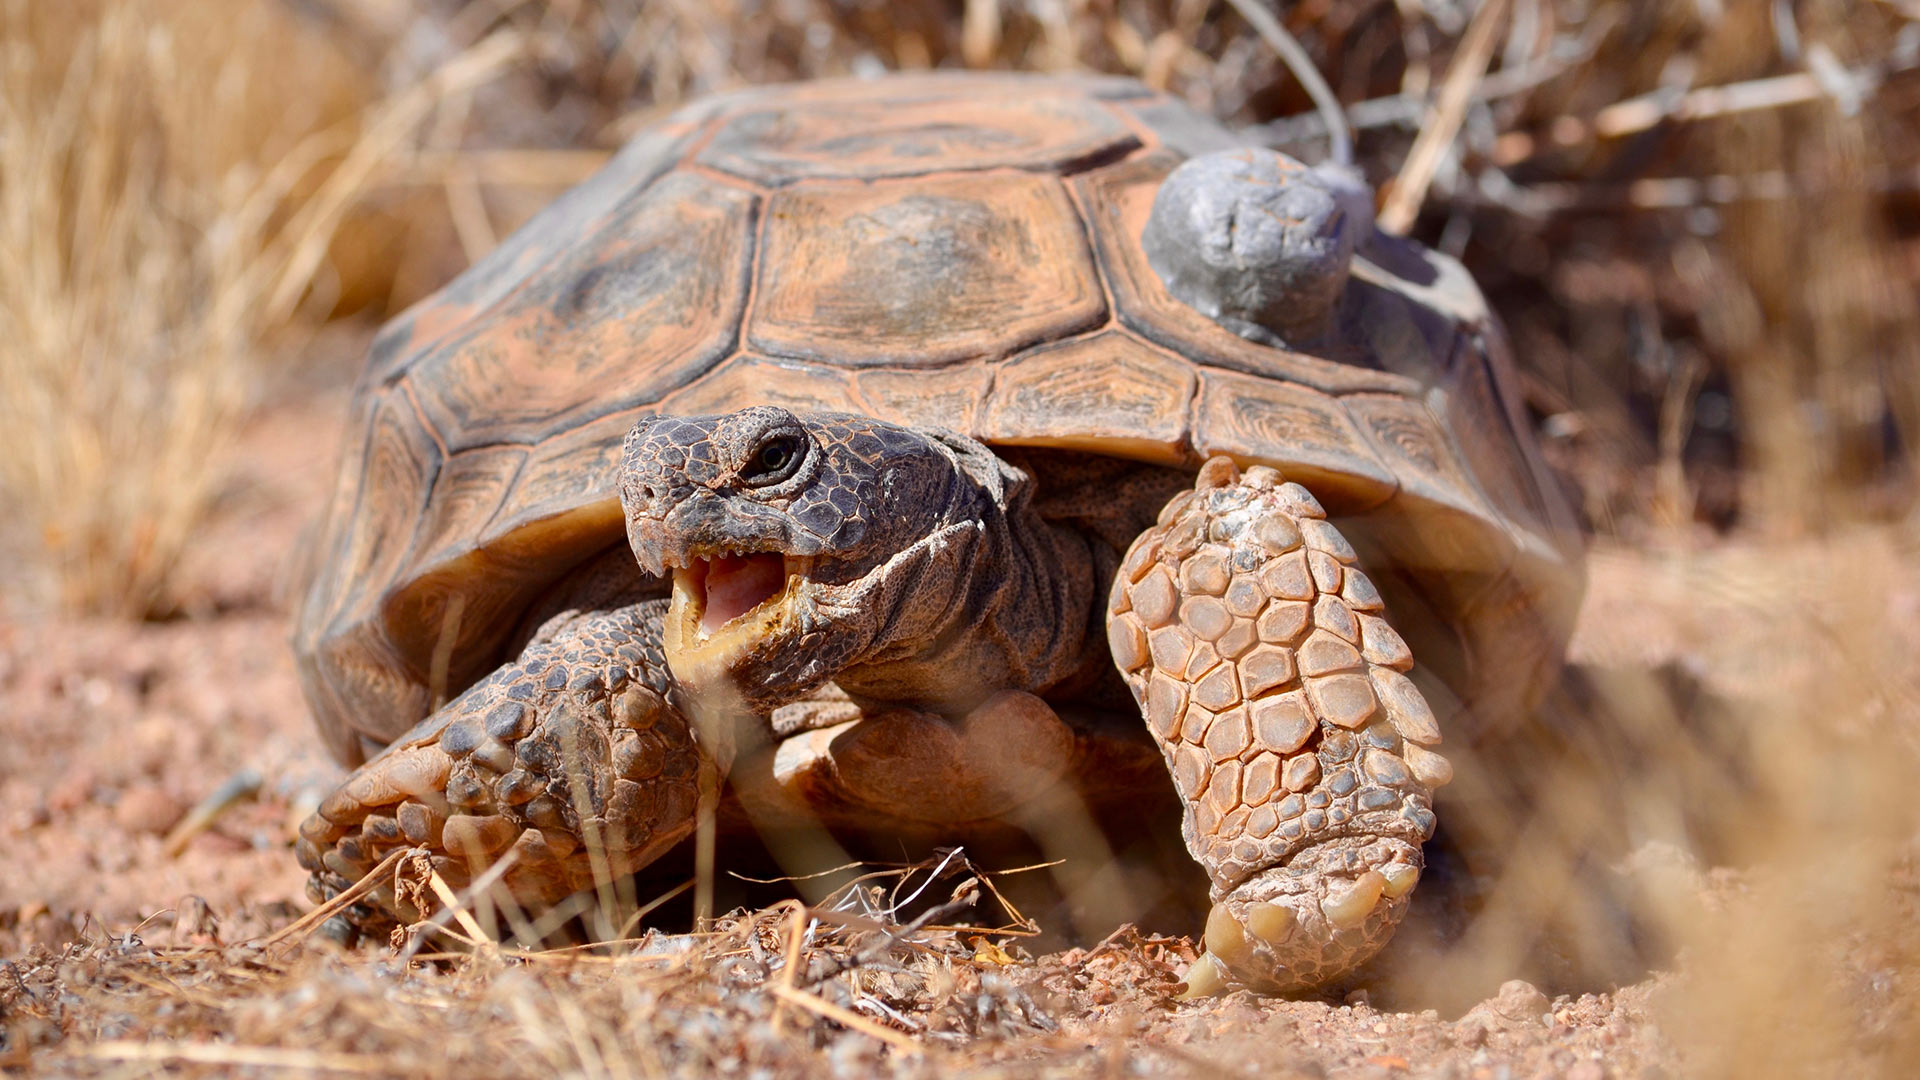 Some tortoises are fitted with small GPS devices. This allows researchers to monitor travel patterns, as well as an animal's overall health.